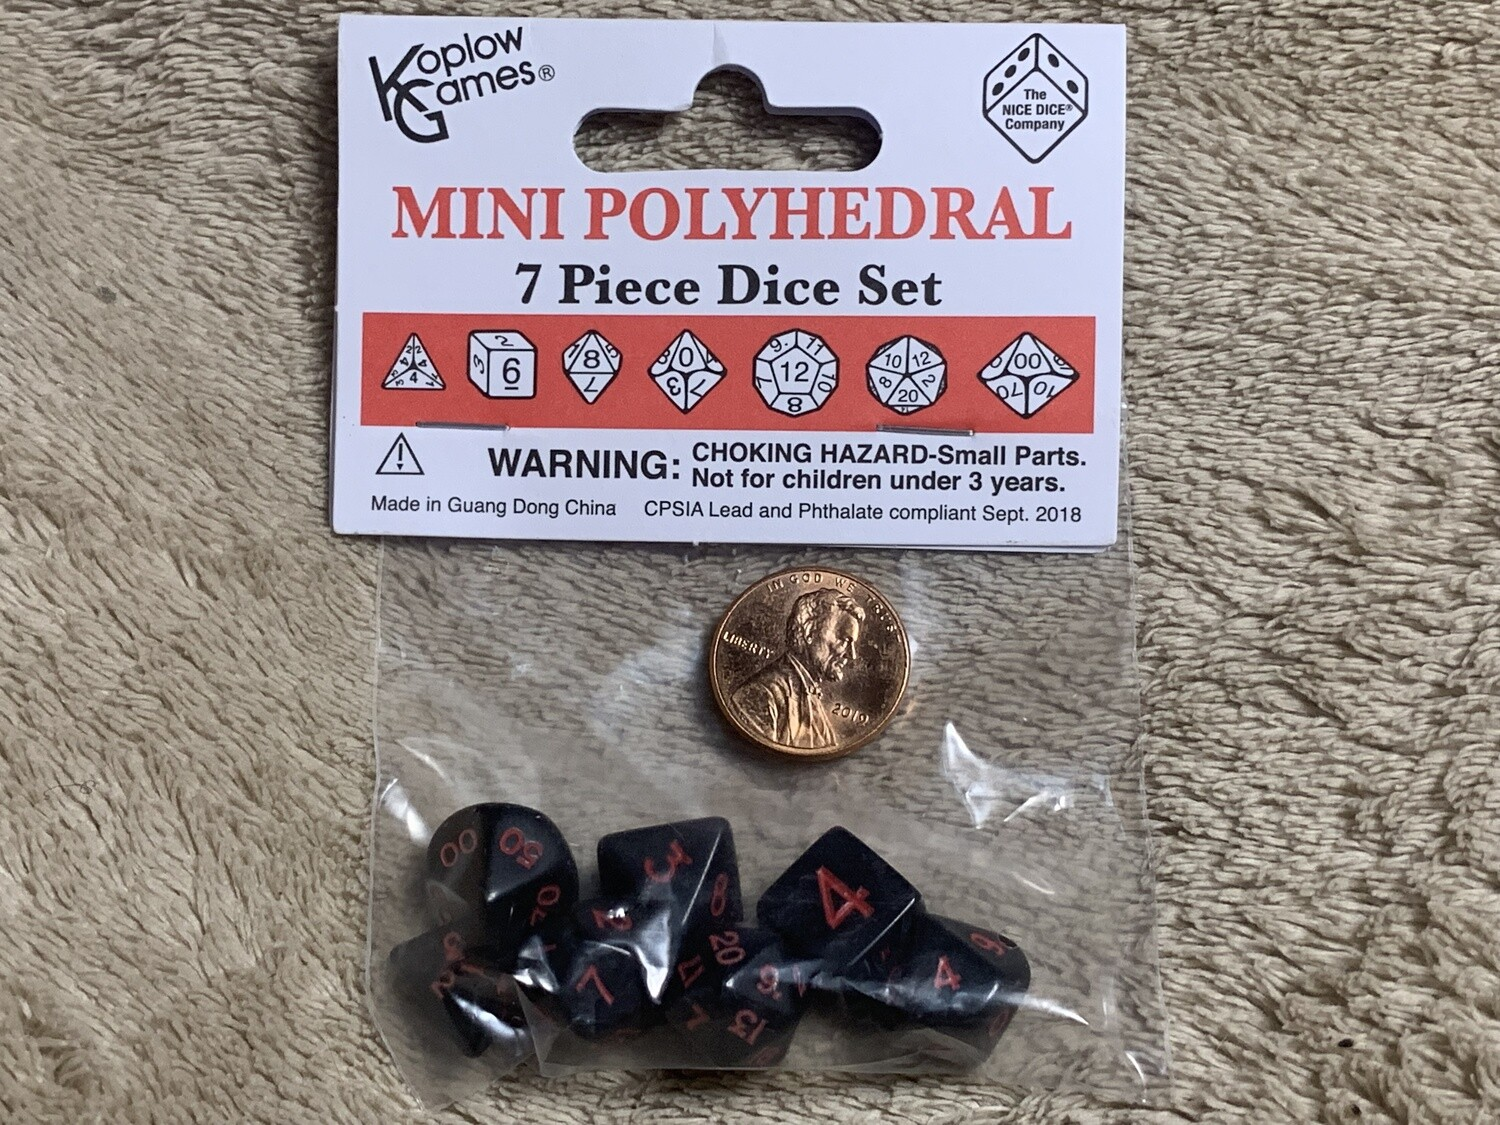 Mini Polyhedral 7 Dice Set - Black with Red Ink